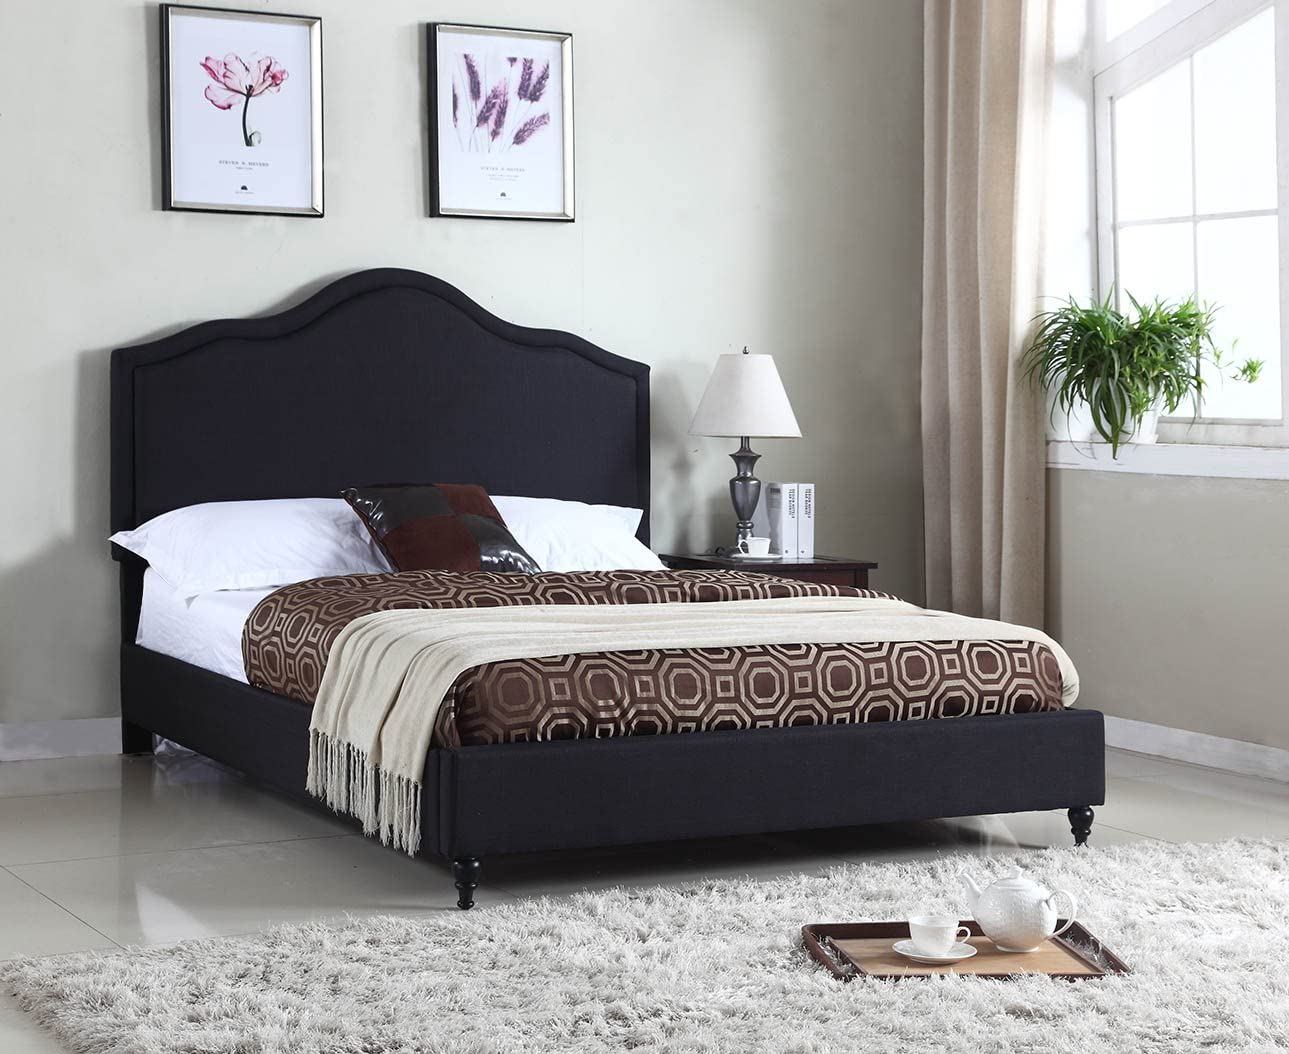 Home Life Cloth Black Linen 51 Tall Headboard Platform Bed with Slats Queen – Complete Bed 5 Year Warranty Included 009